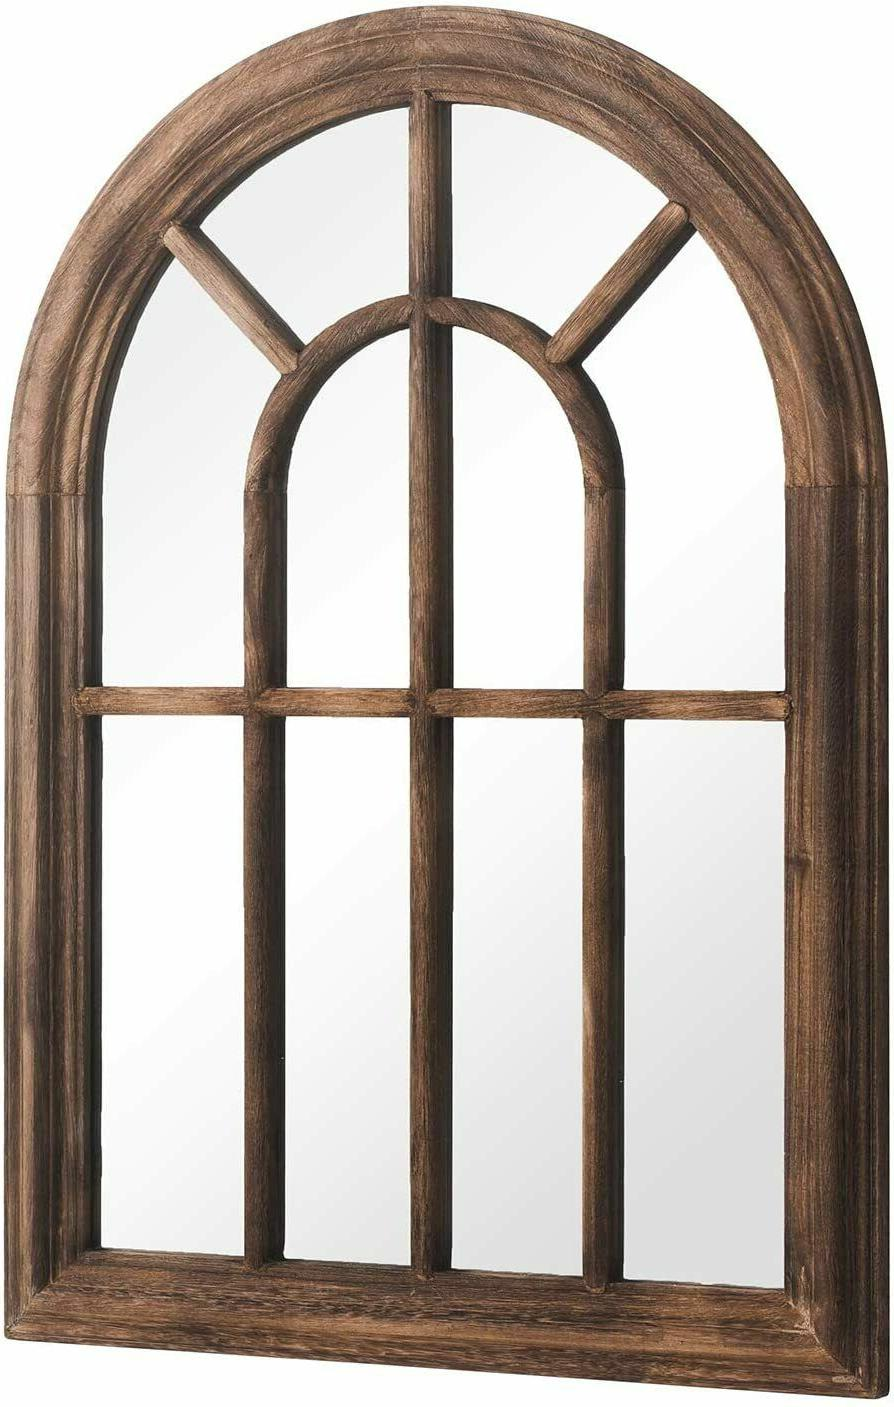 Brown Hanging Mirror Wood Arched Decorative